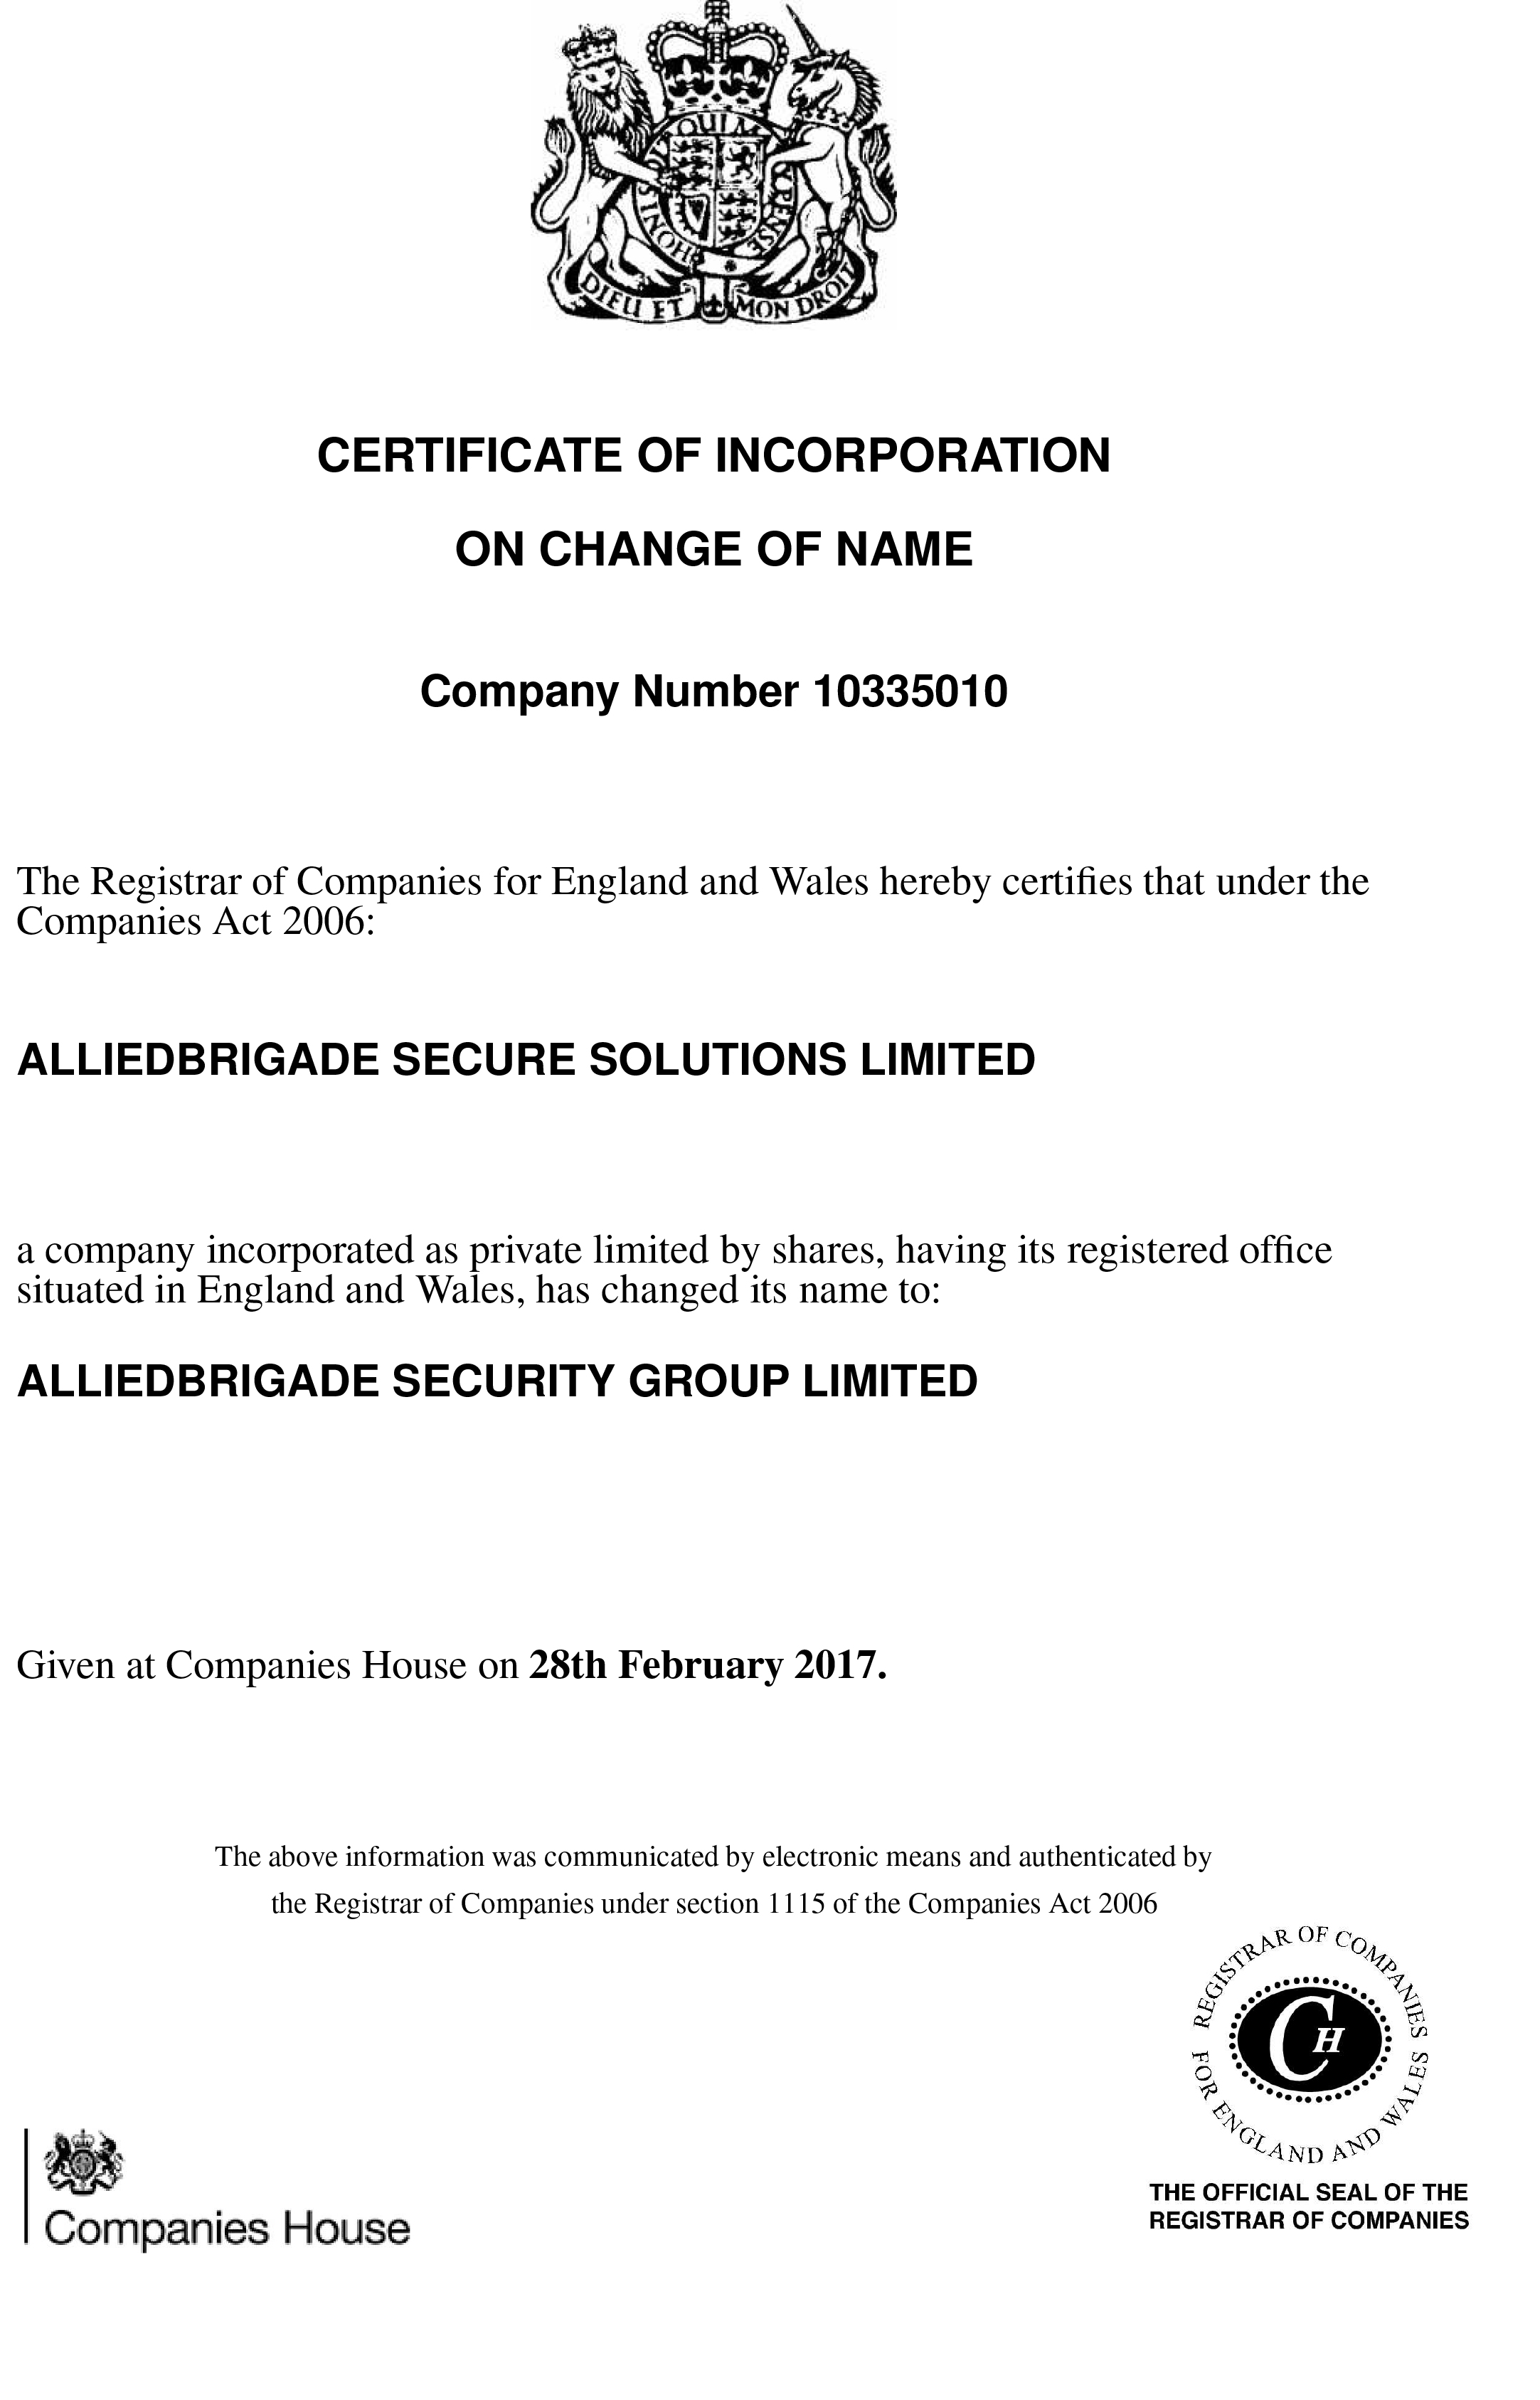 ALLIEDBRIGADE-NAME-CHANGE-CERTIFICATE